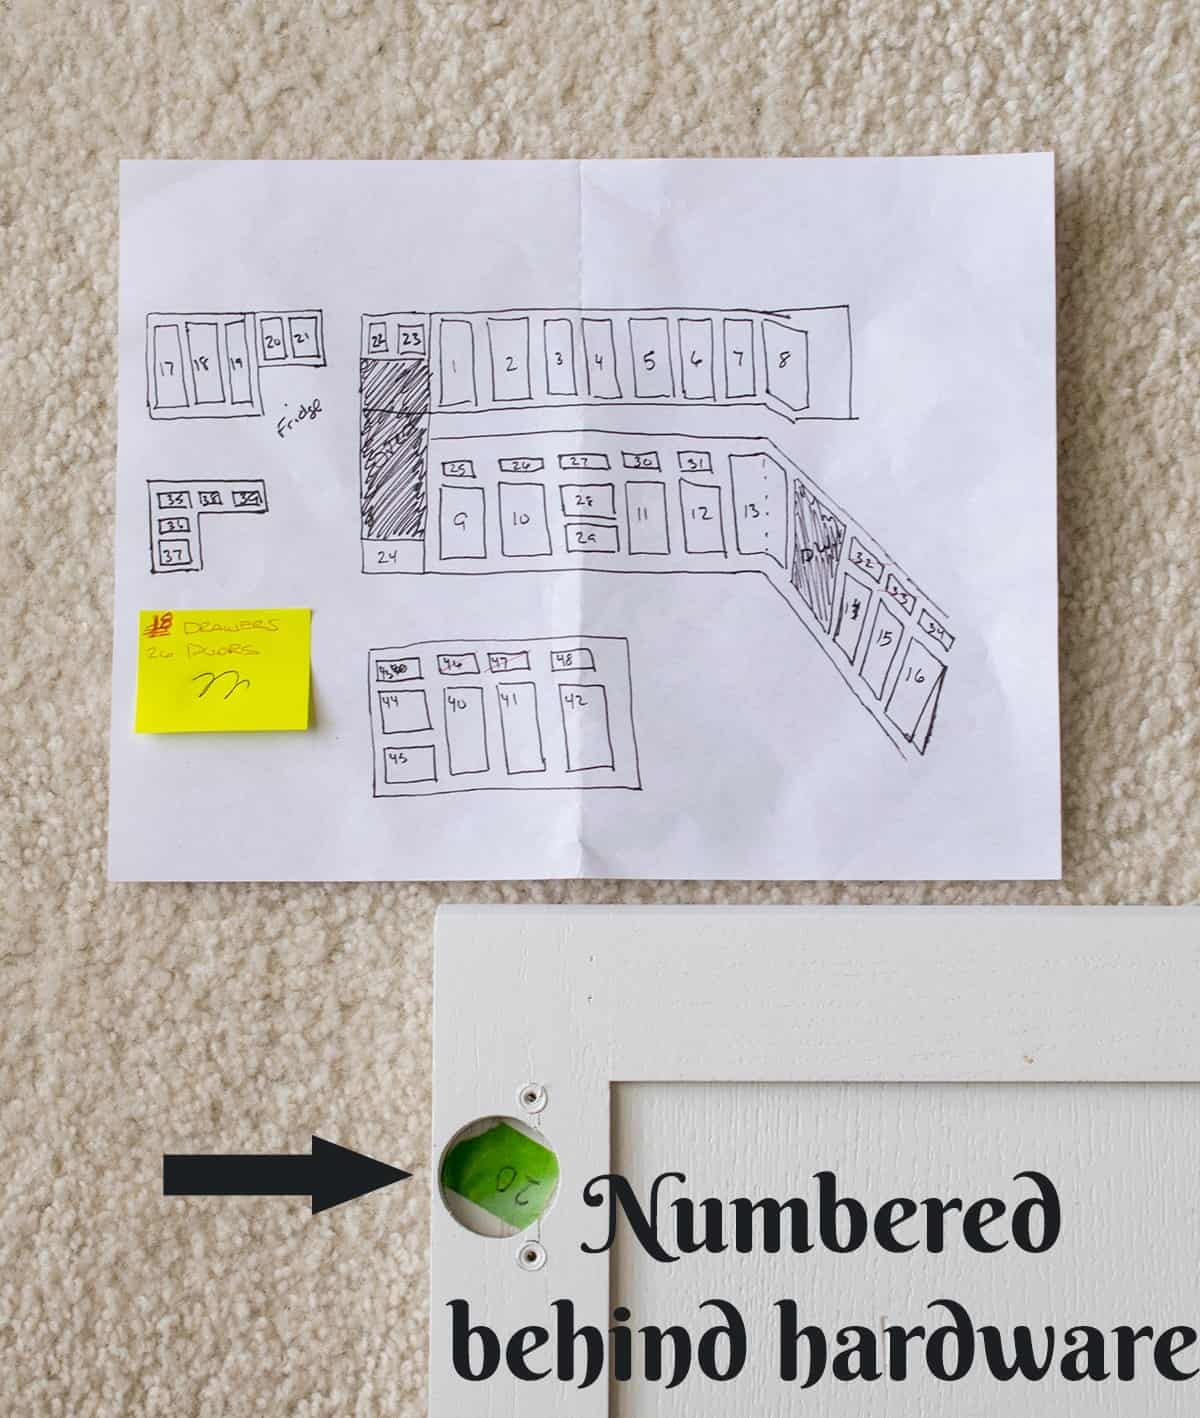 Paper drawing with numbered cabinets and labelled corner of white cabinet for reassembly.